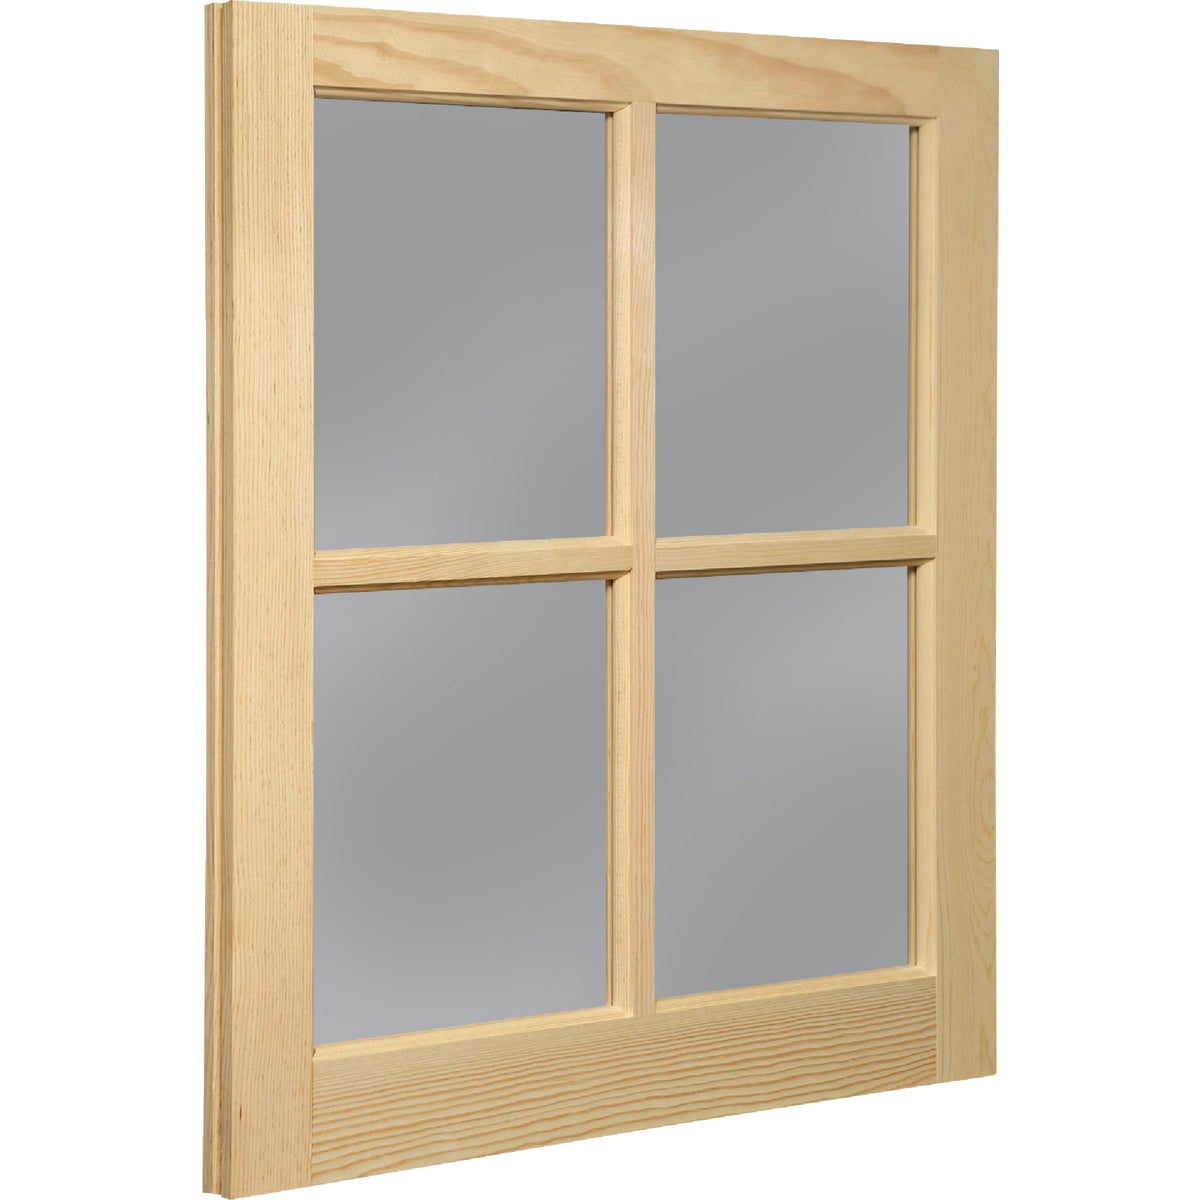 22X29 WOOD BARN SASH - BSW2229 by Northview Window